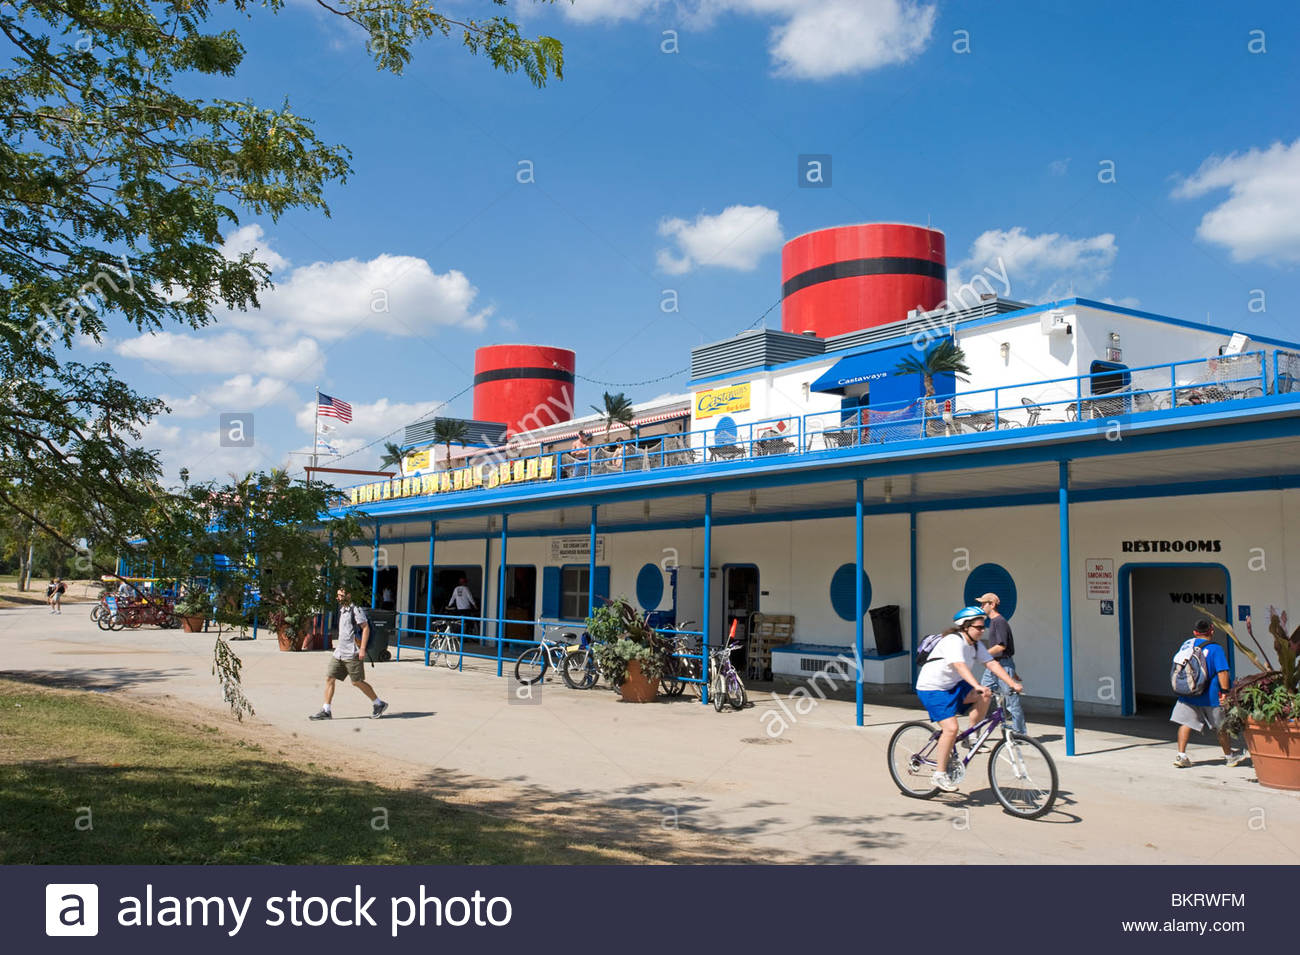 Castaways Stock Photos  Castaways Stock Images Alamy - Chicago map north avenue beach